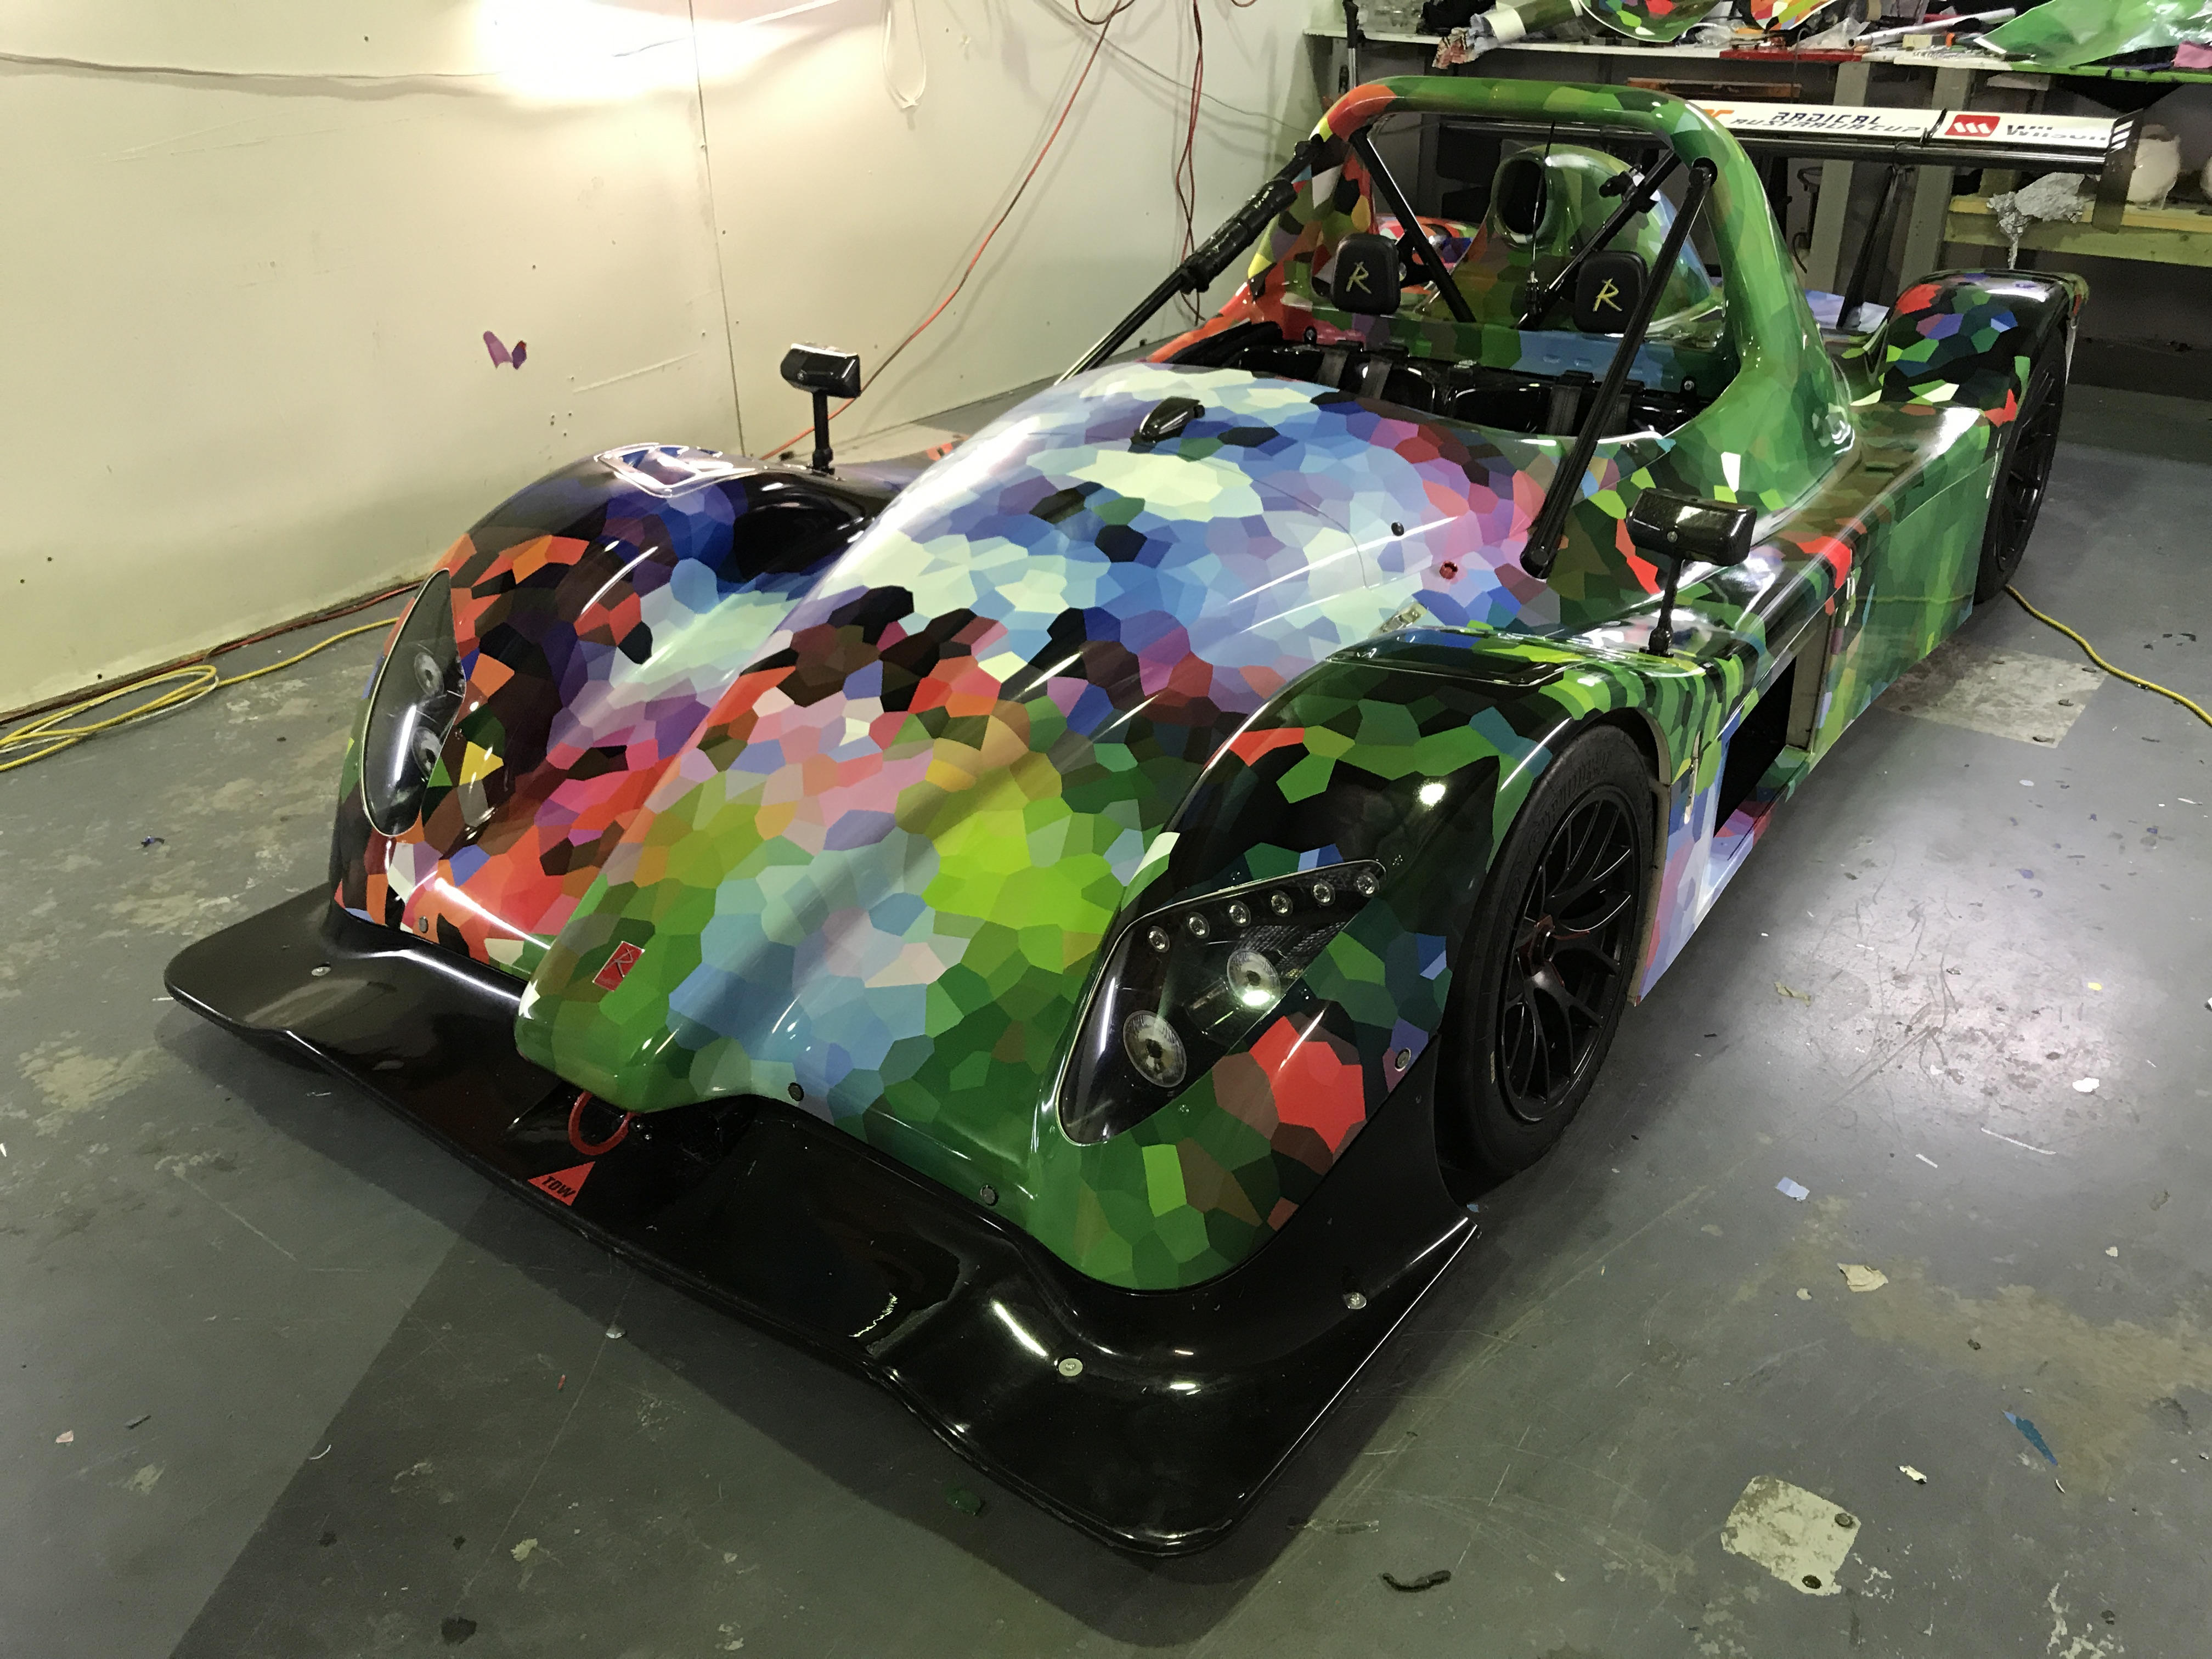 Radical car wrapped in custom print design.